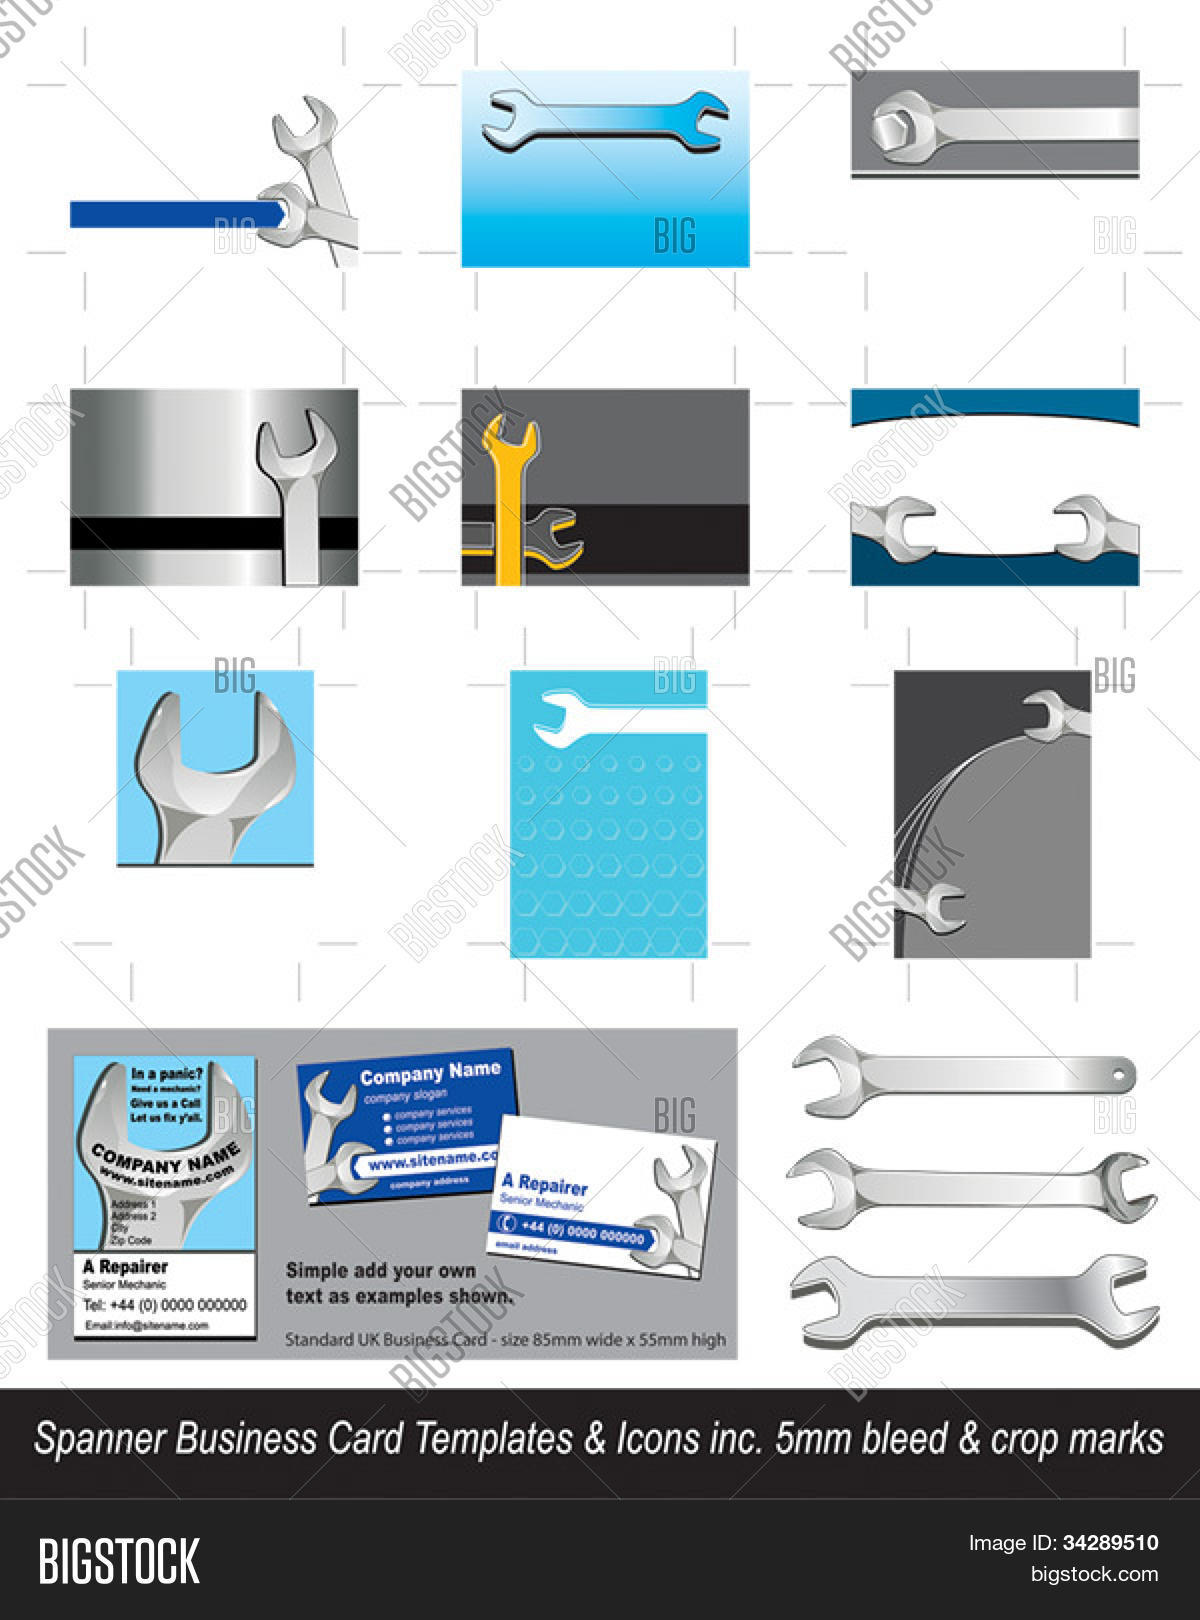 Spanner tool business card vector photo bigstock spanner tool business card templates artwork ready with 5mm bleed and crop marks simply reheart Image collections